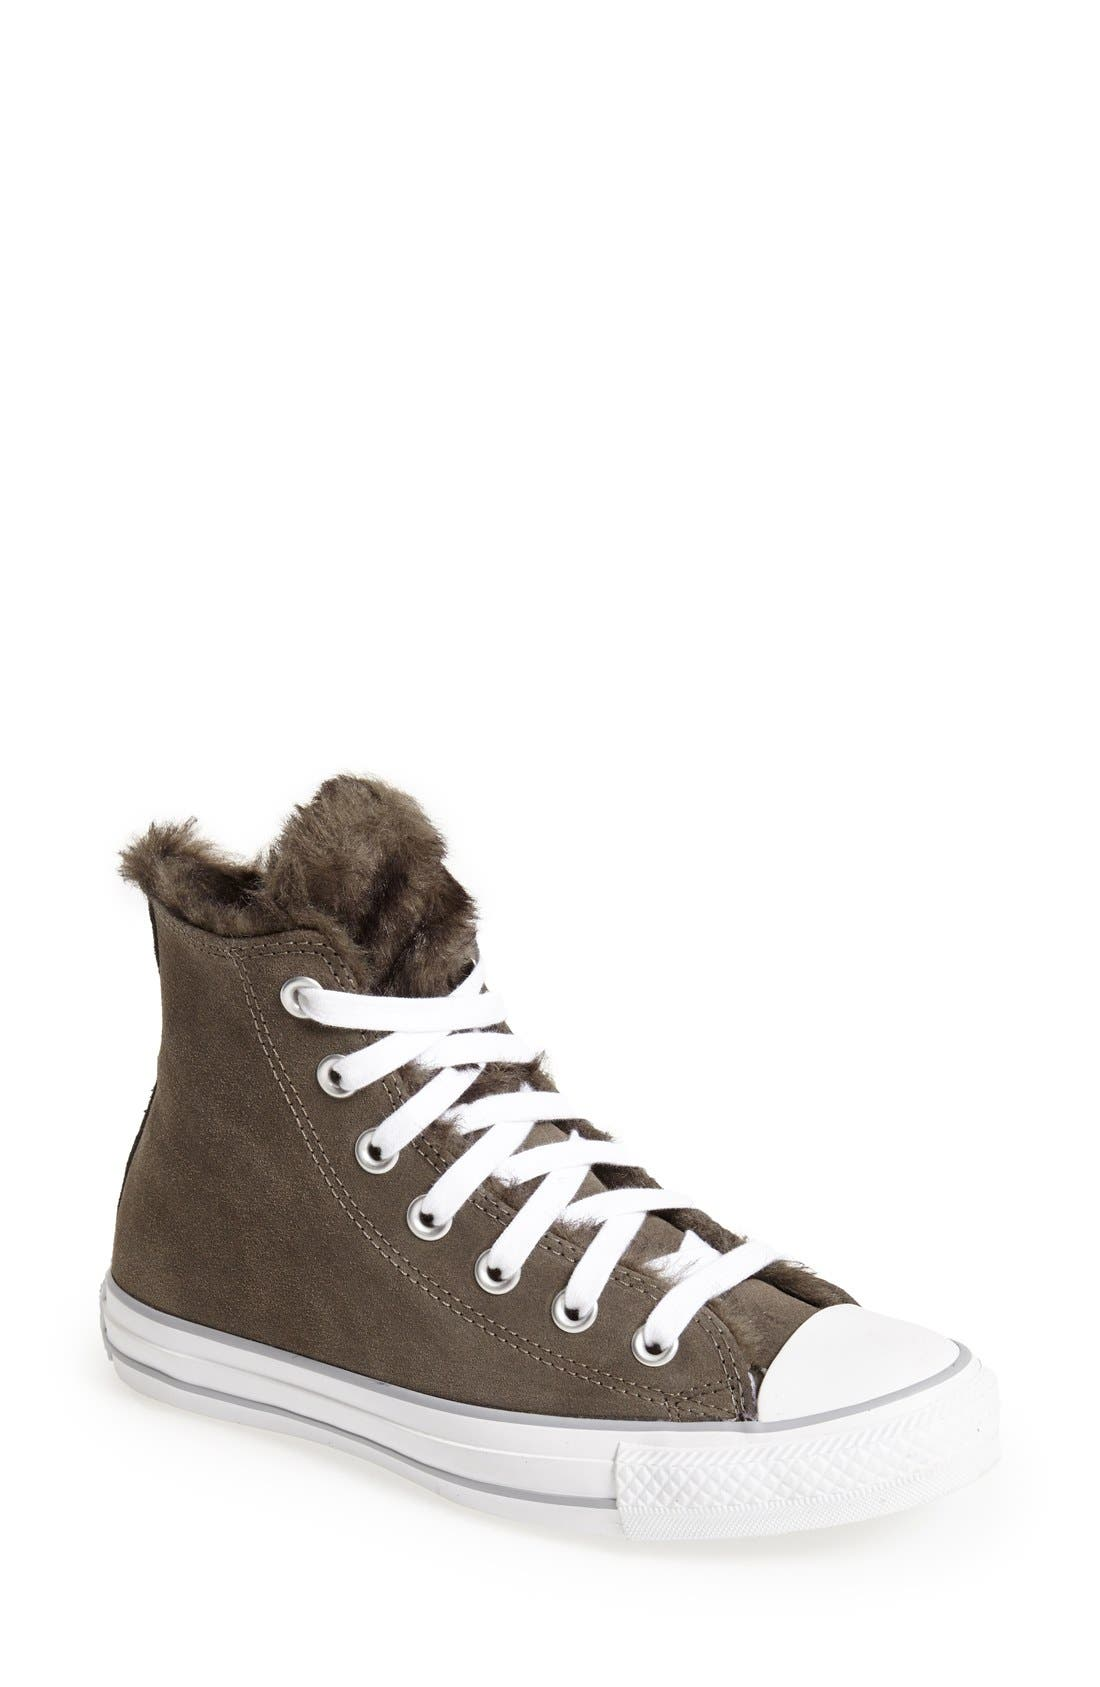 Alternate Image 1 Selected - Converse Chuck Taylor® All Star® 'Fun Fur' High-Top Sneaker (Women)